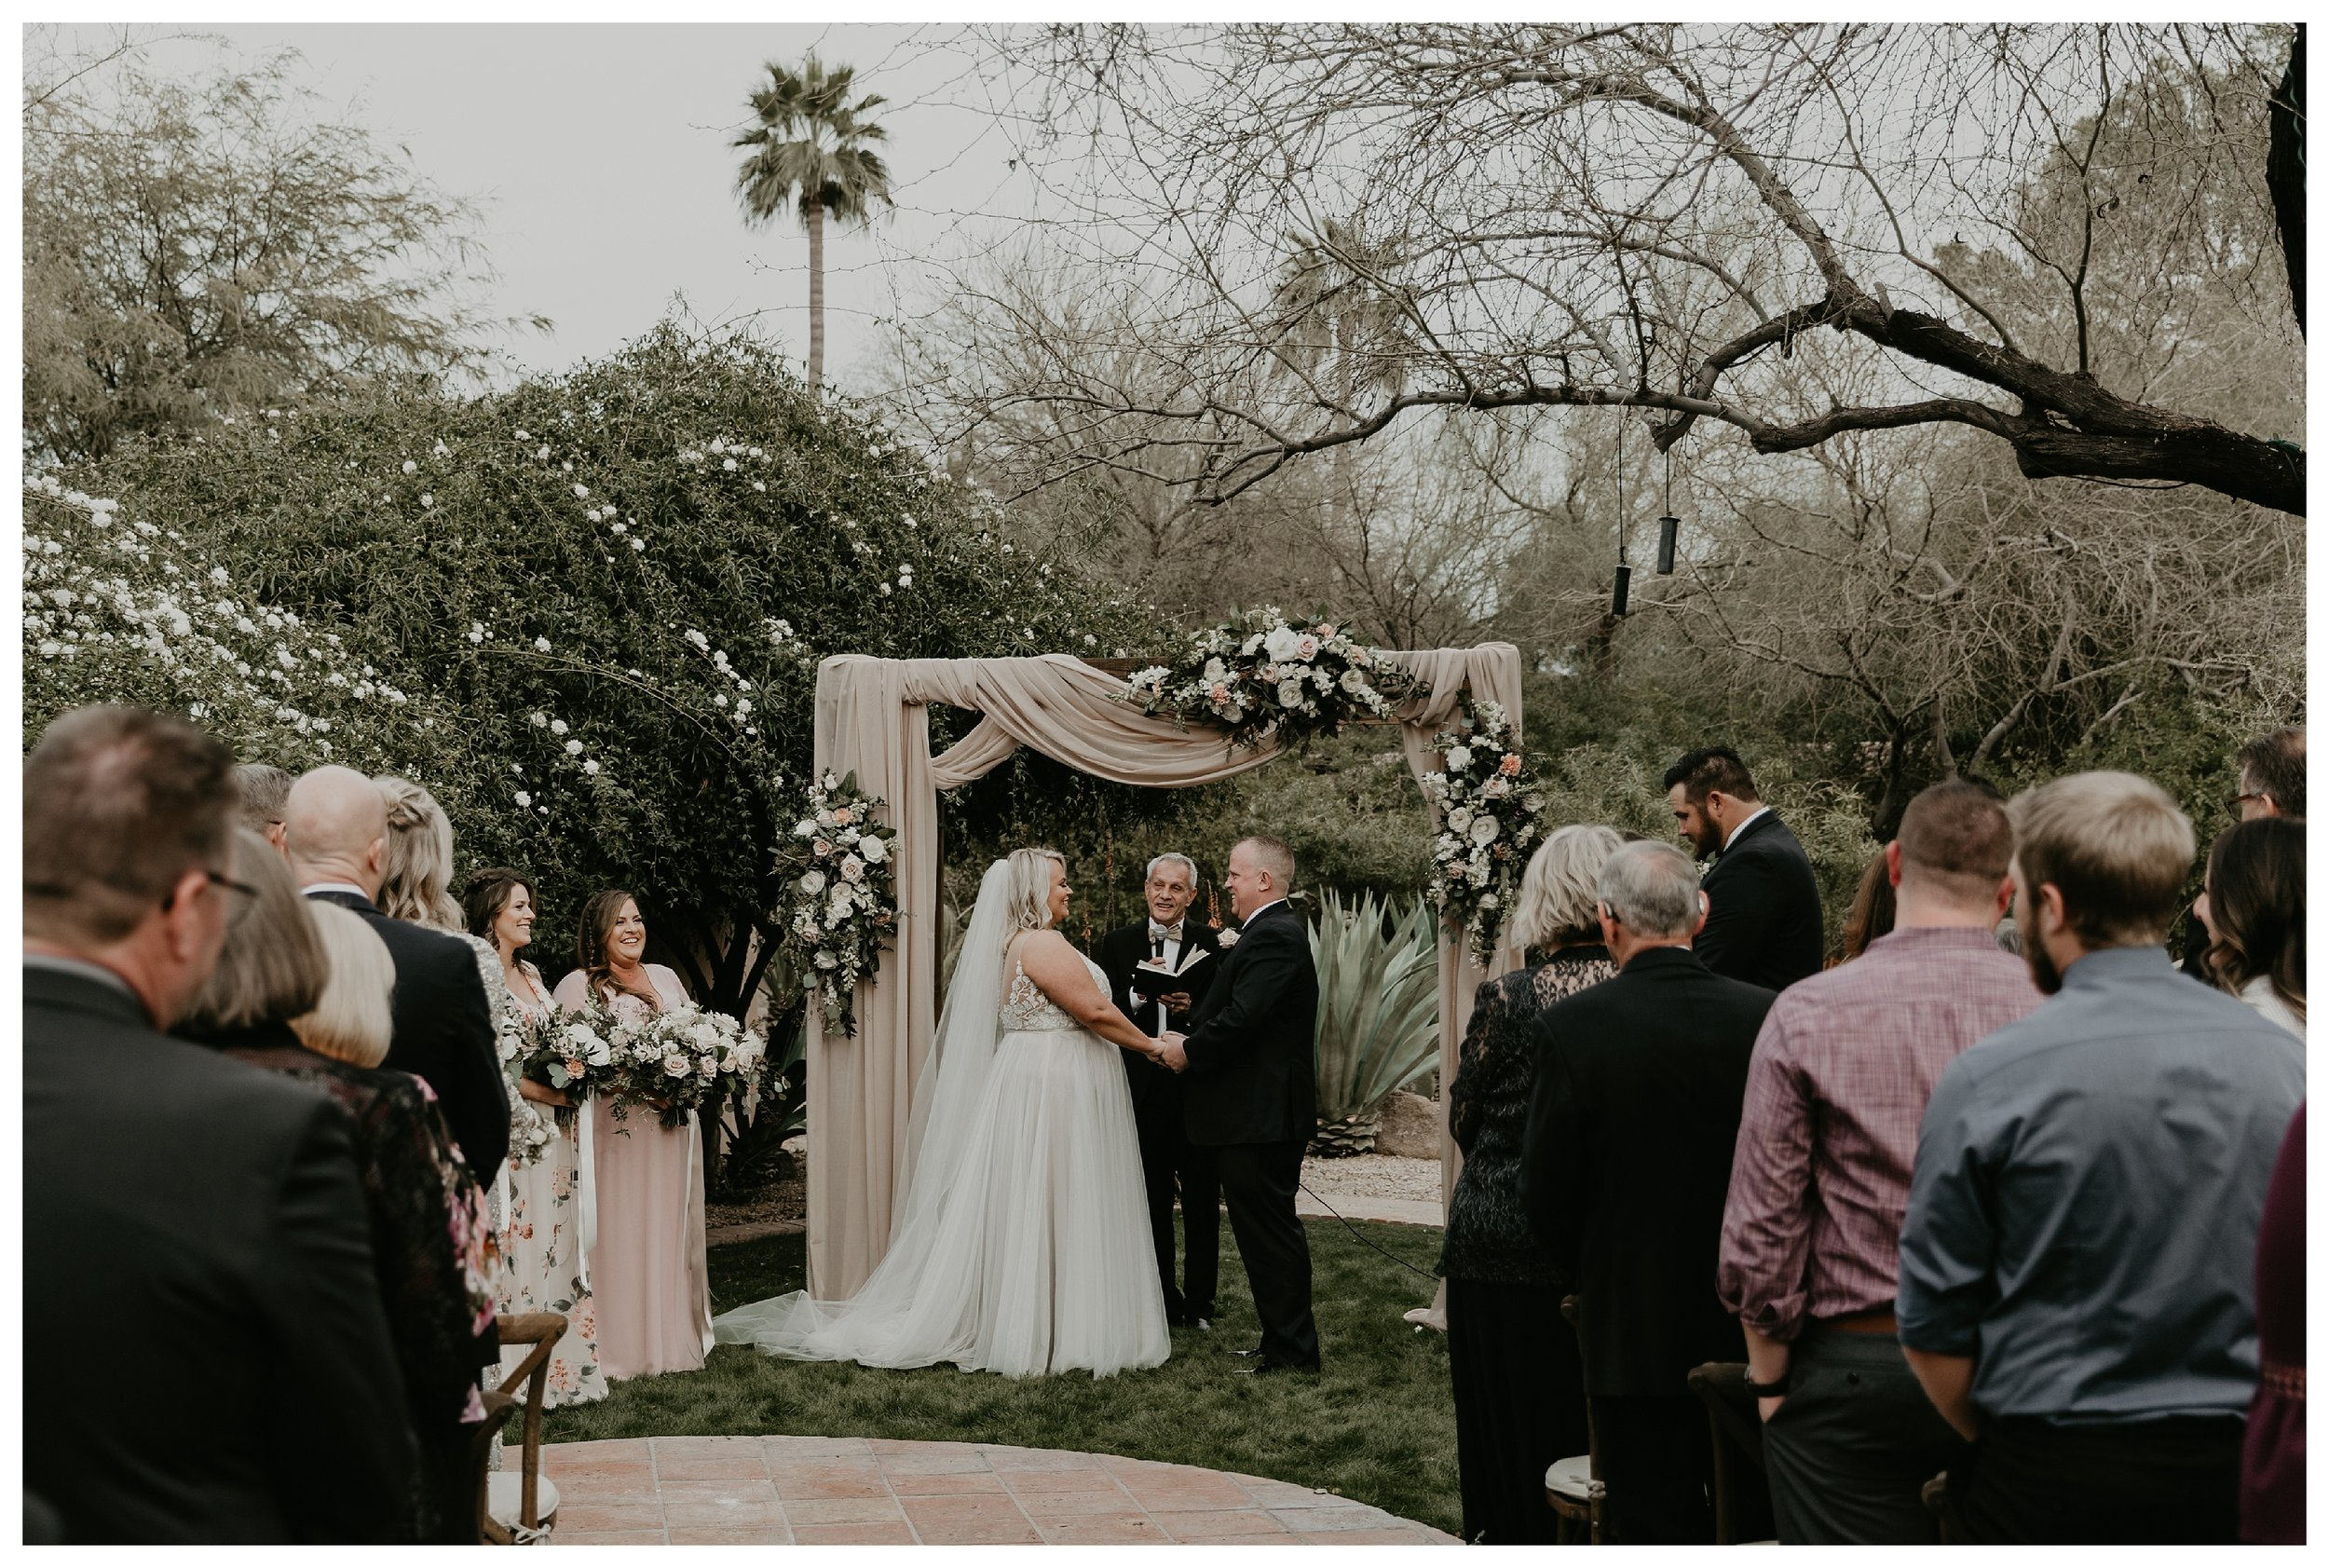 Hermosa Inn wedding intimate ceremony with greenery and floral arch install